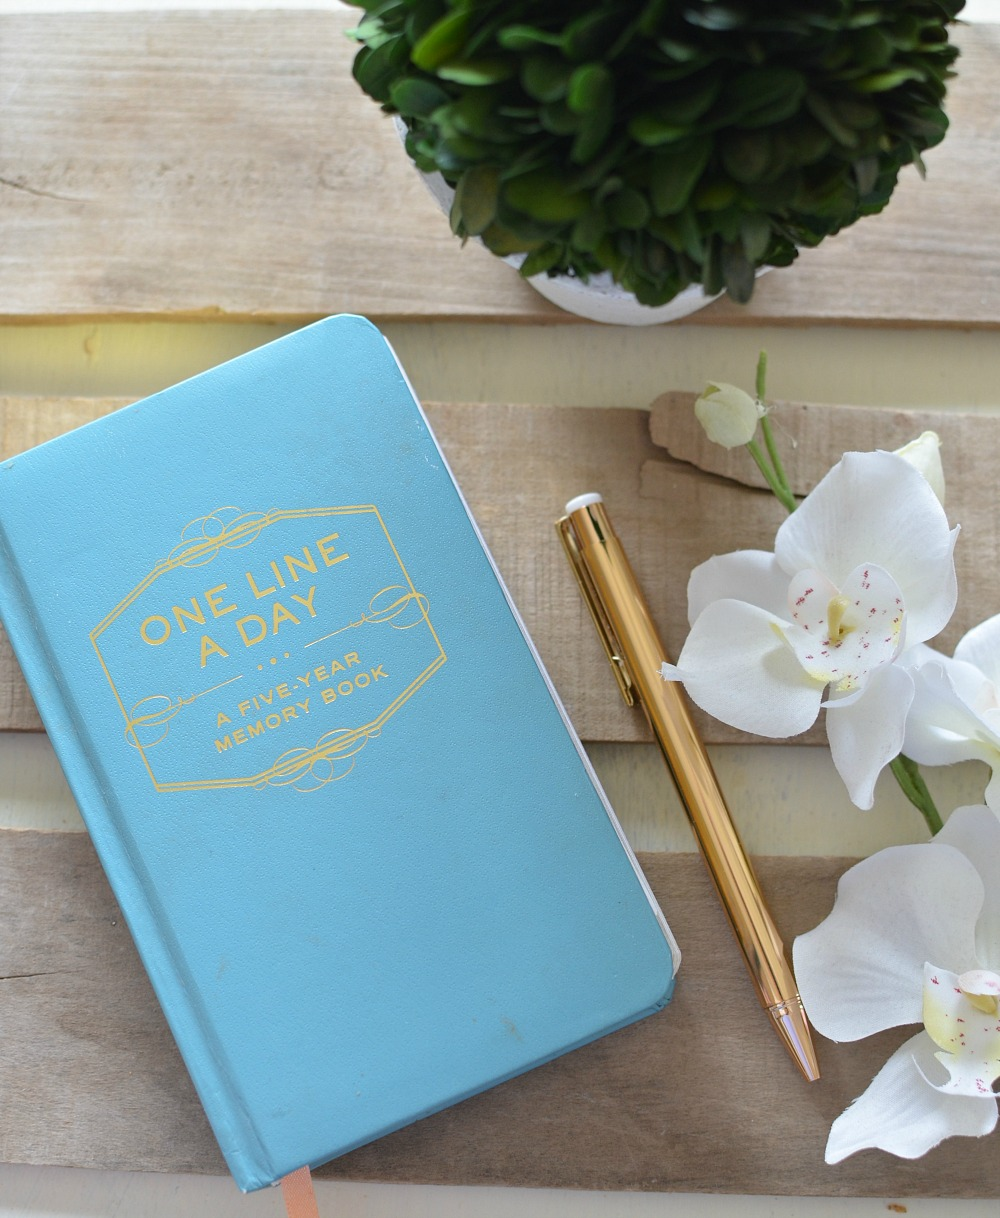 Friday Favorites: One Line a Day Memory Book for 5 Years